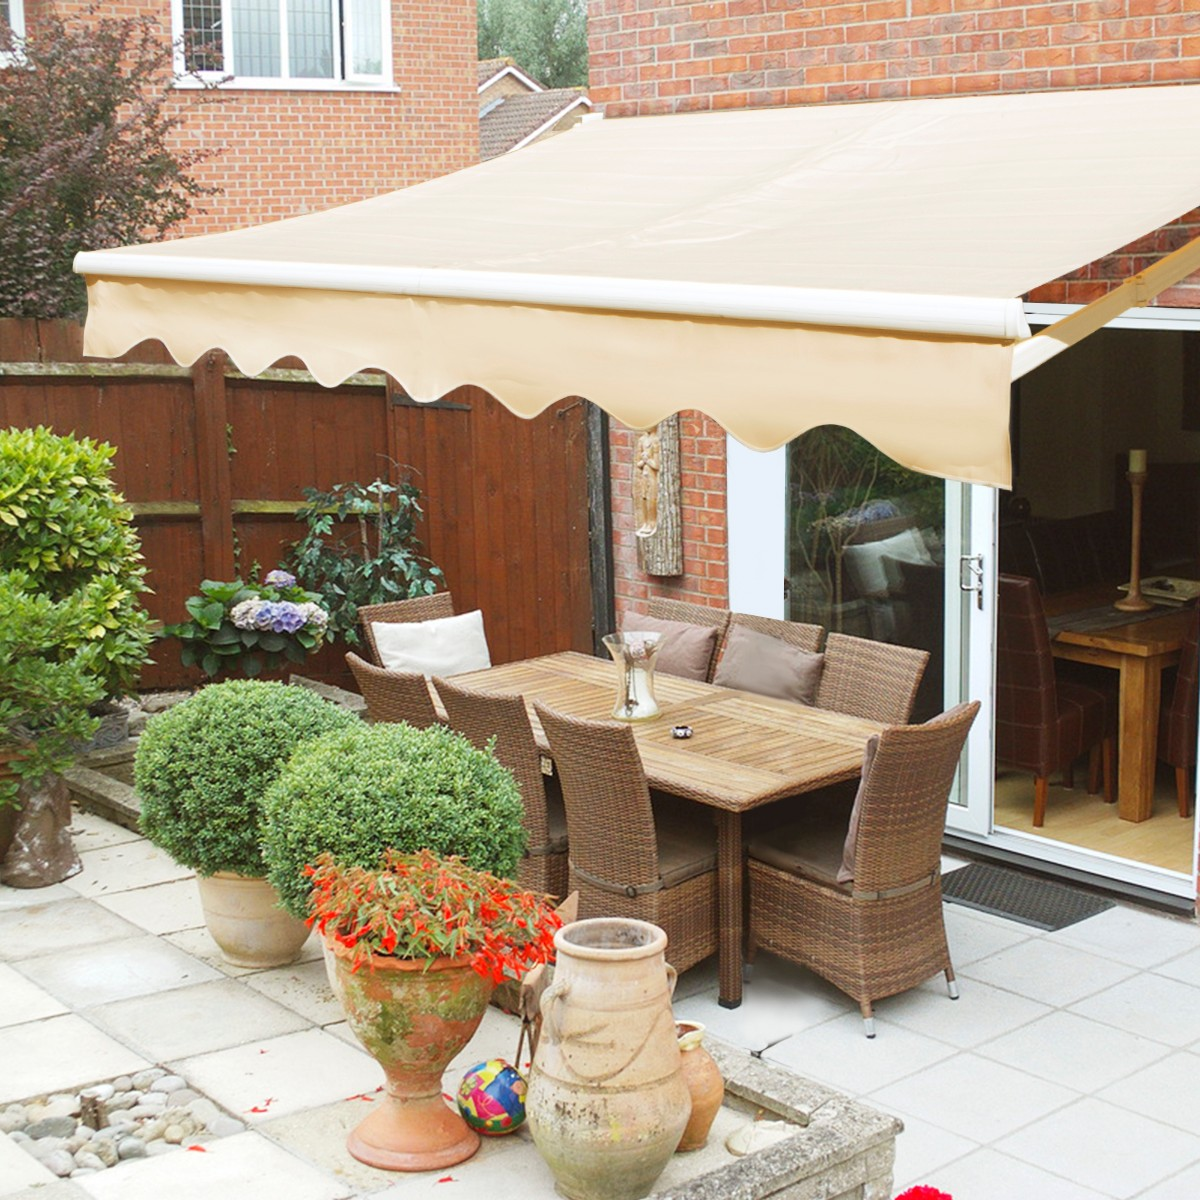 xtremepowerus manual retractable patio awning tan multiple sizes